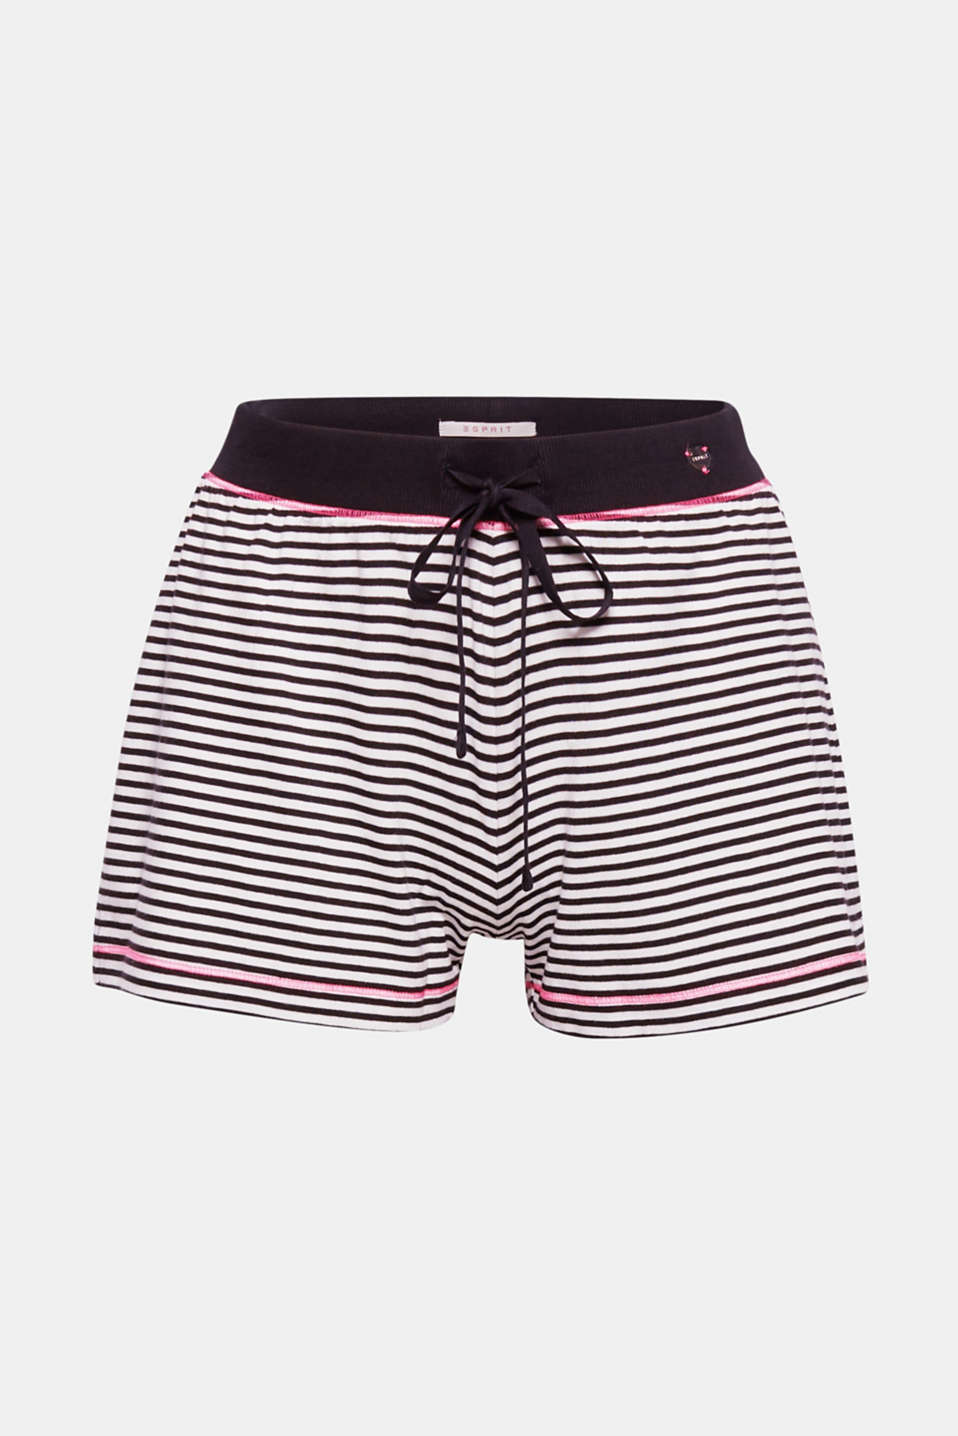 Narrow stripes and bright flatlock seams make these jersey shorts a soft favourite loungewear piece.